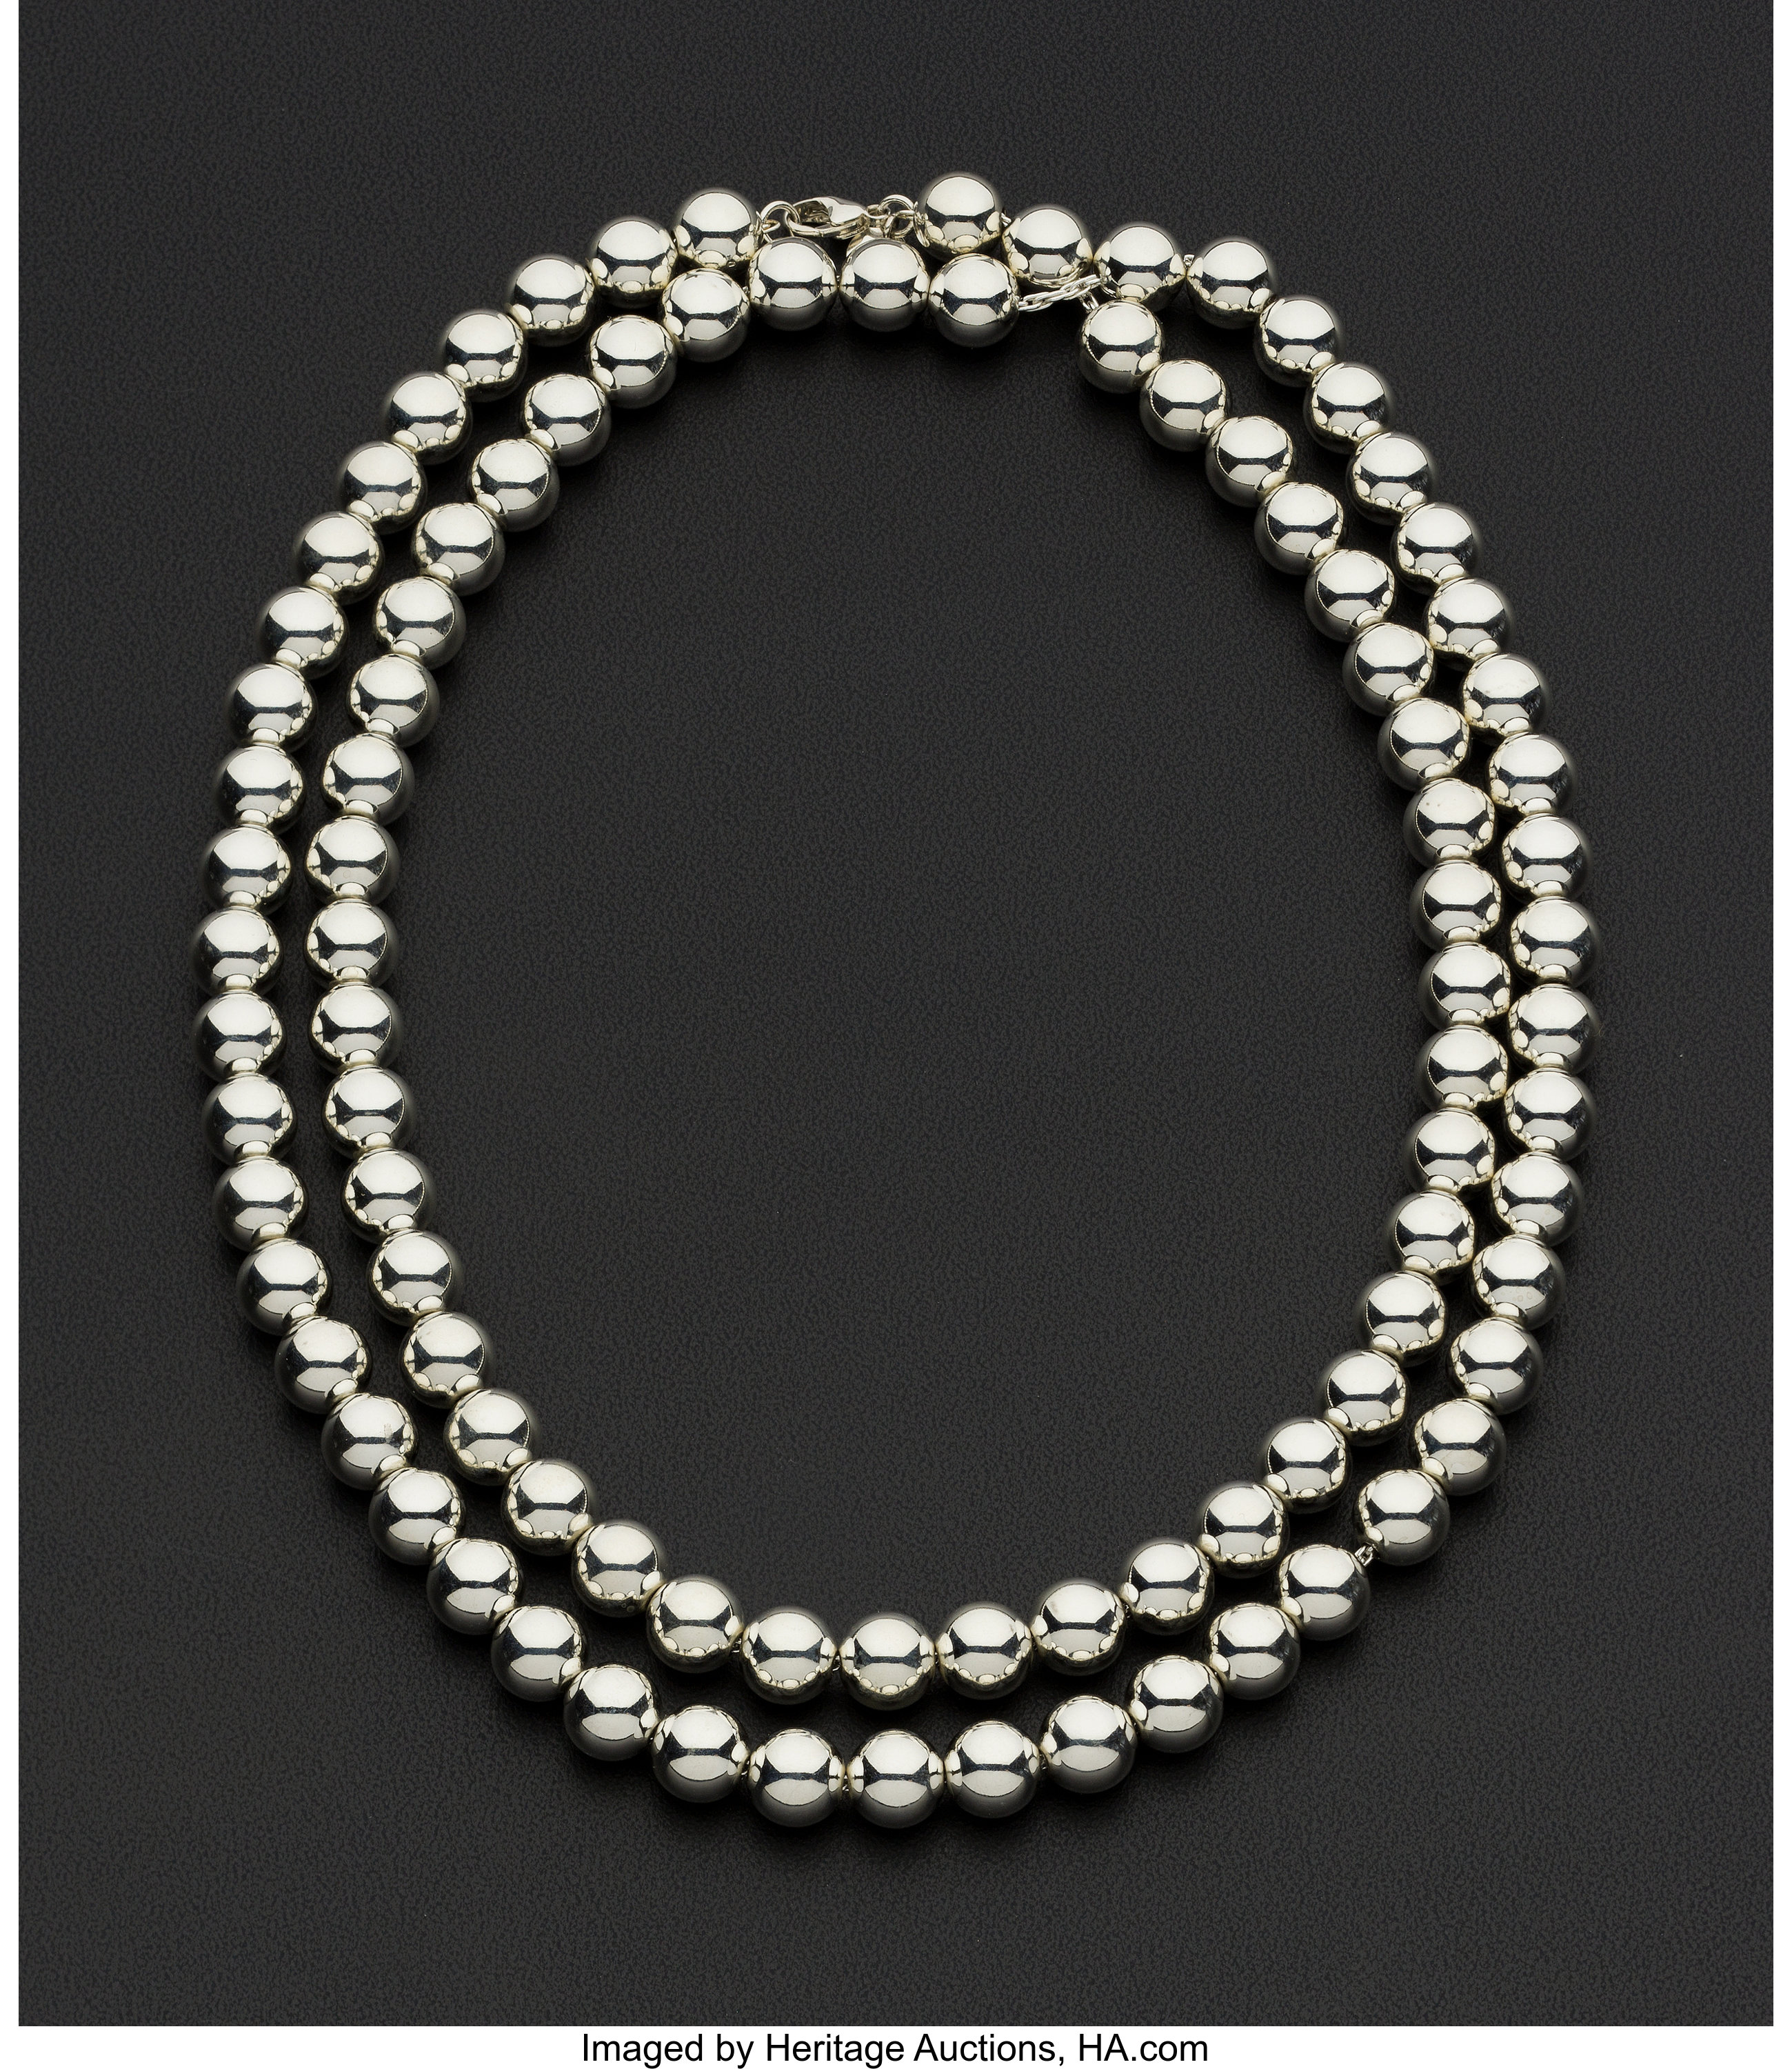 Tiffany Co Sterling Silver Bead Necklace Estate Jewelry Lot 73025 Heritage Auctions